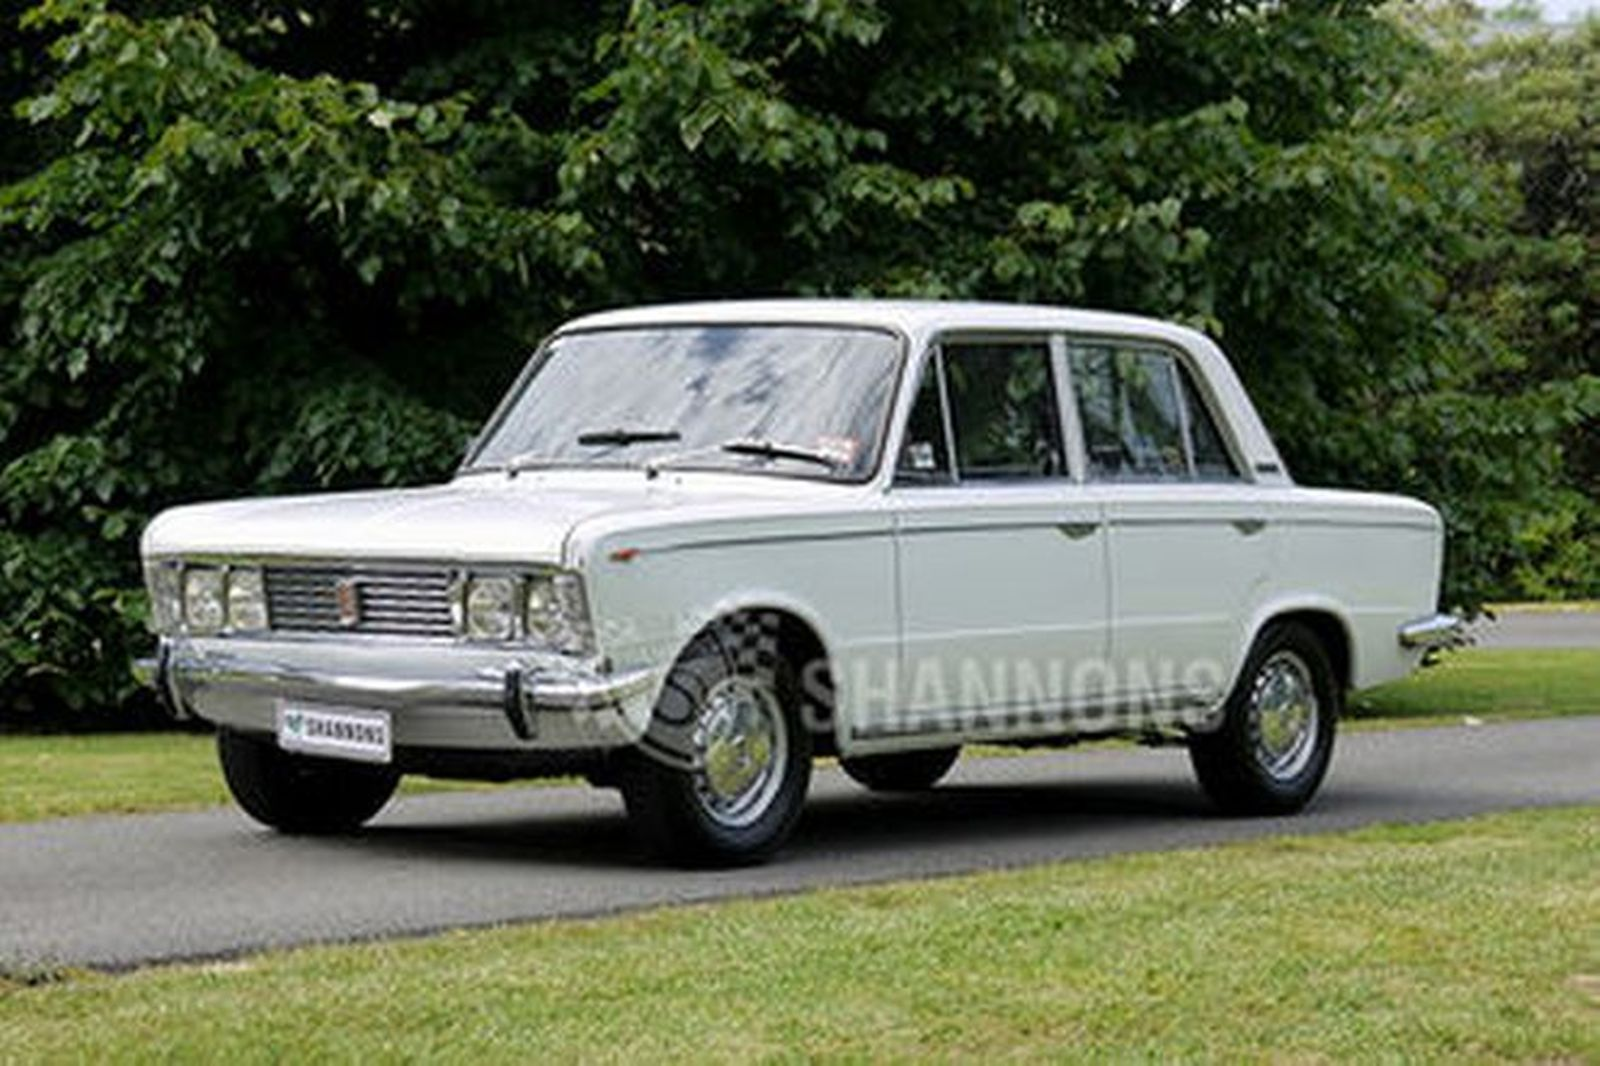 Car Payments >> Sold: Fiat 125 Sedan Auctions - Lot 1 - Shannons